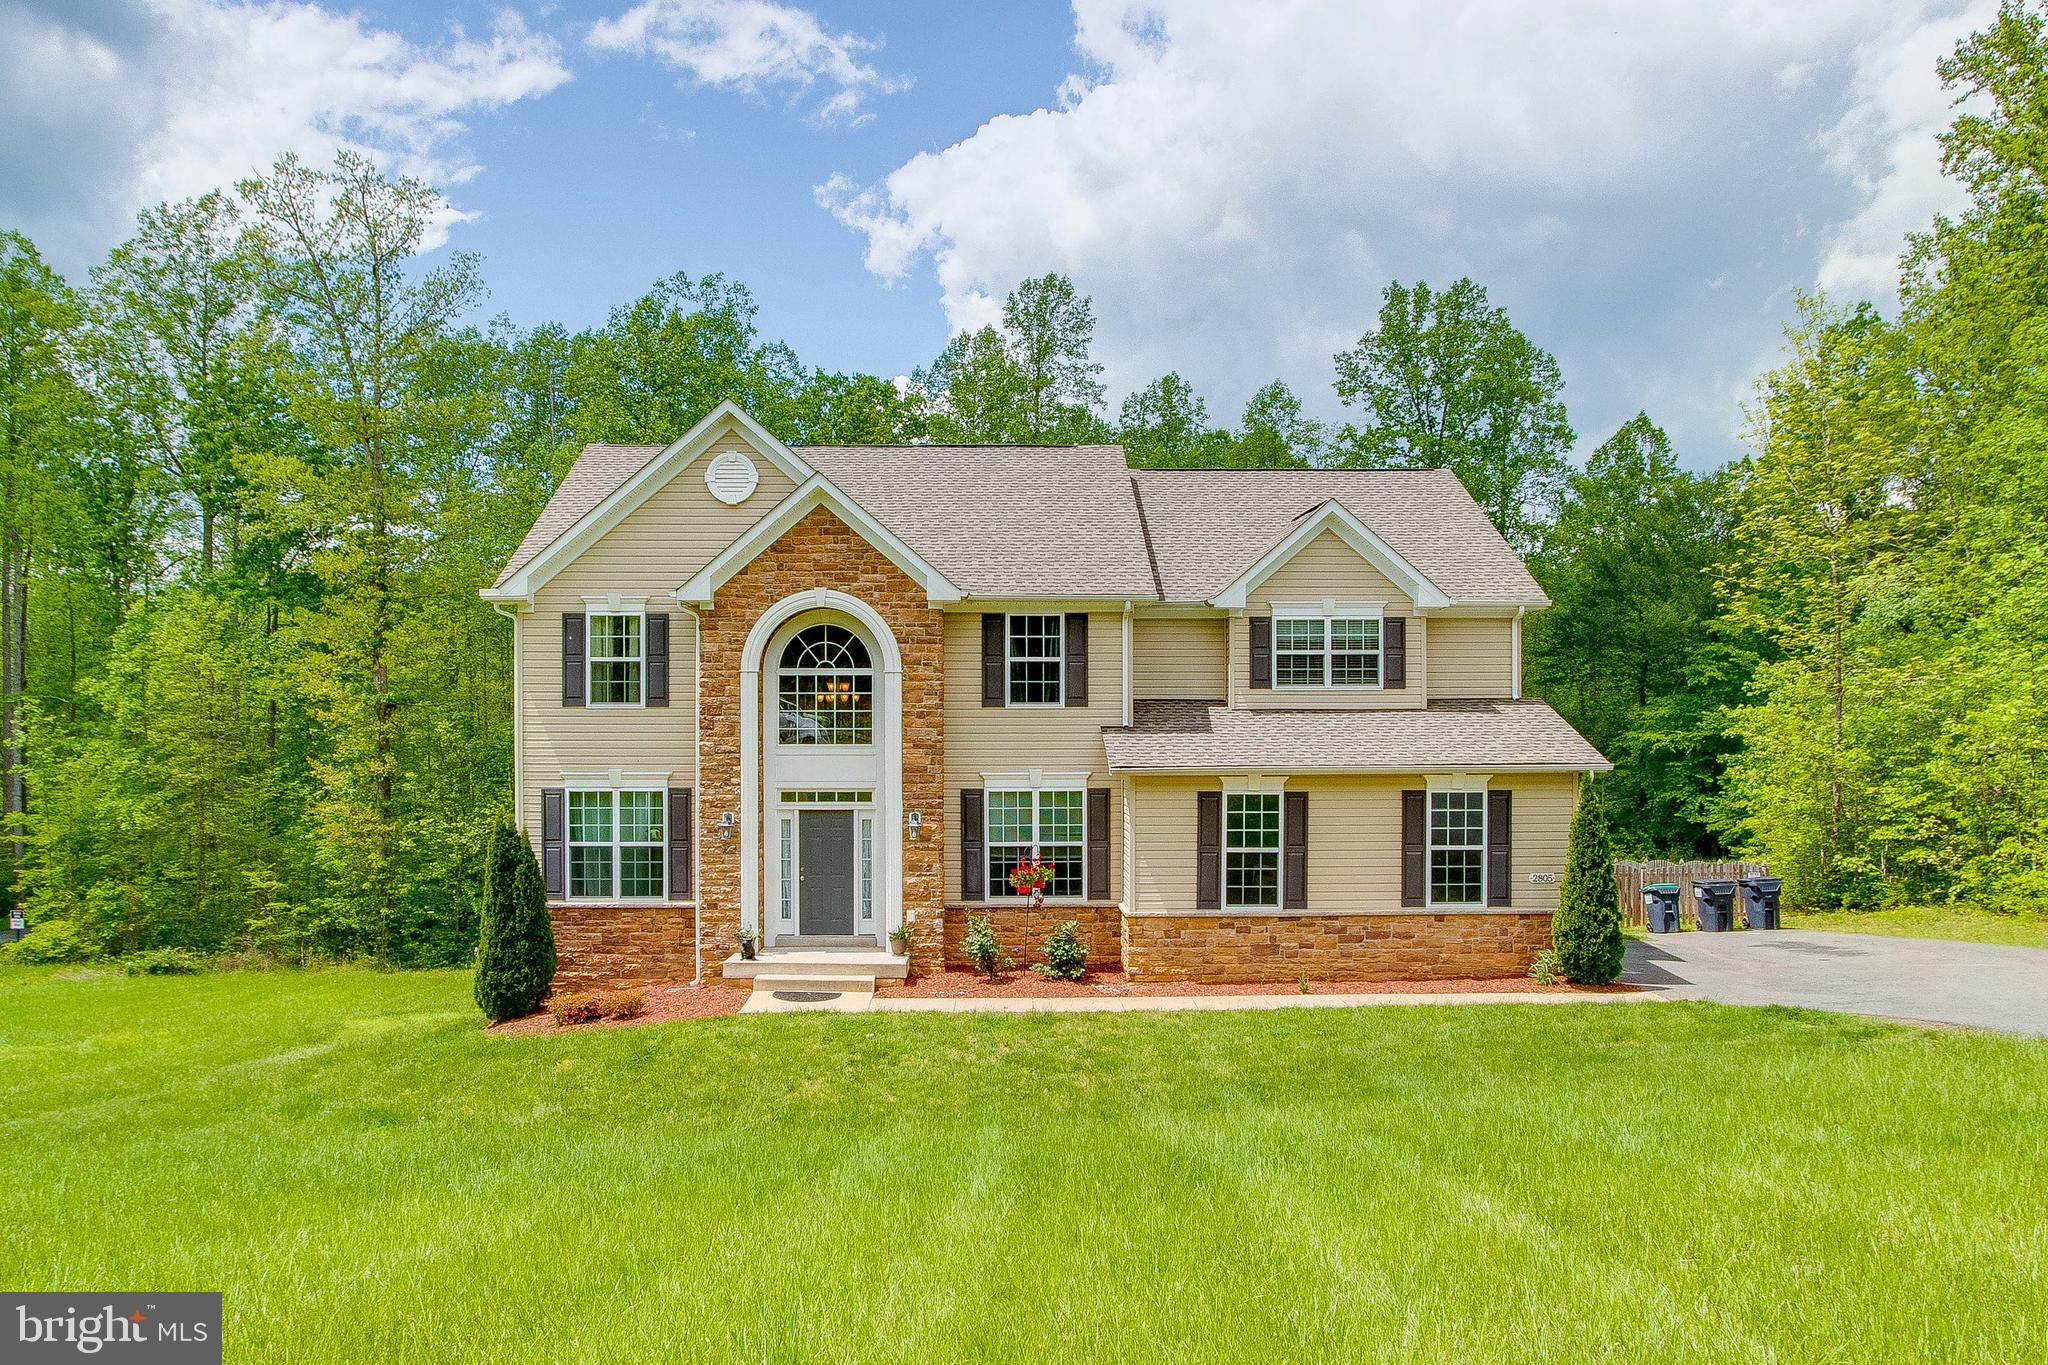 This gorgeous home is ready for you in the Grouse Pointe neighborhood of Stafford.  This premium lot